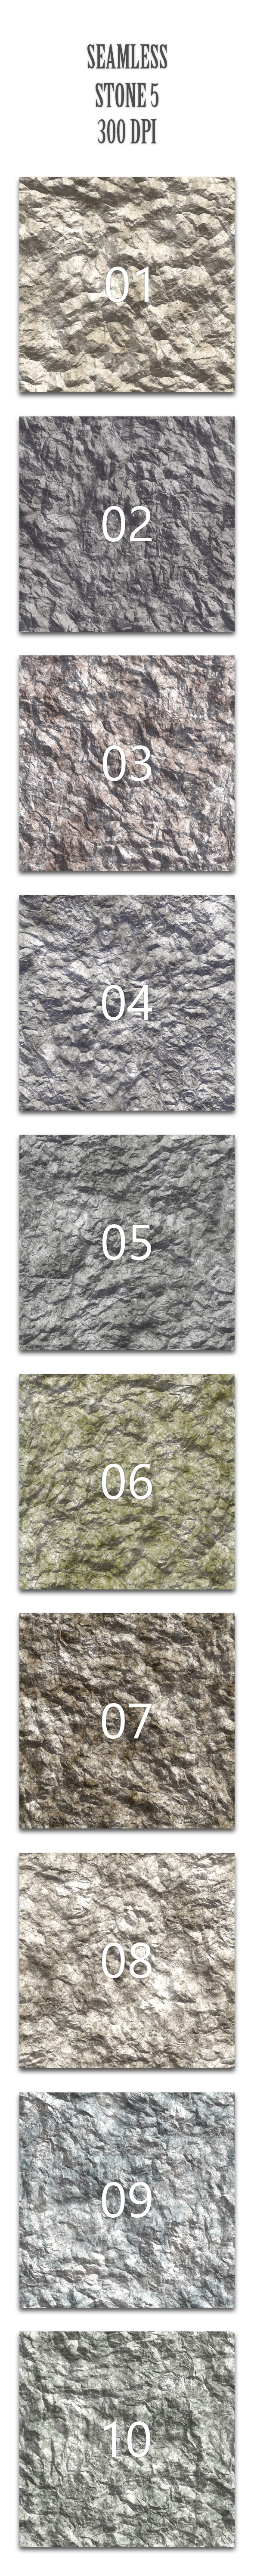 Seamless Stone 5 - Nature Textures / Fills / Patterns